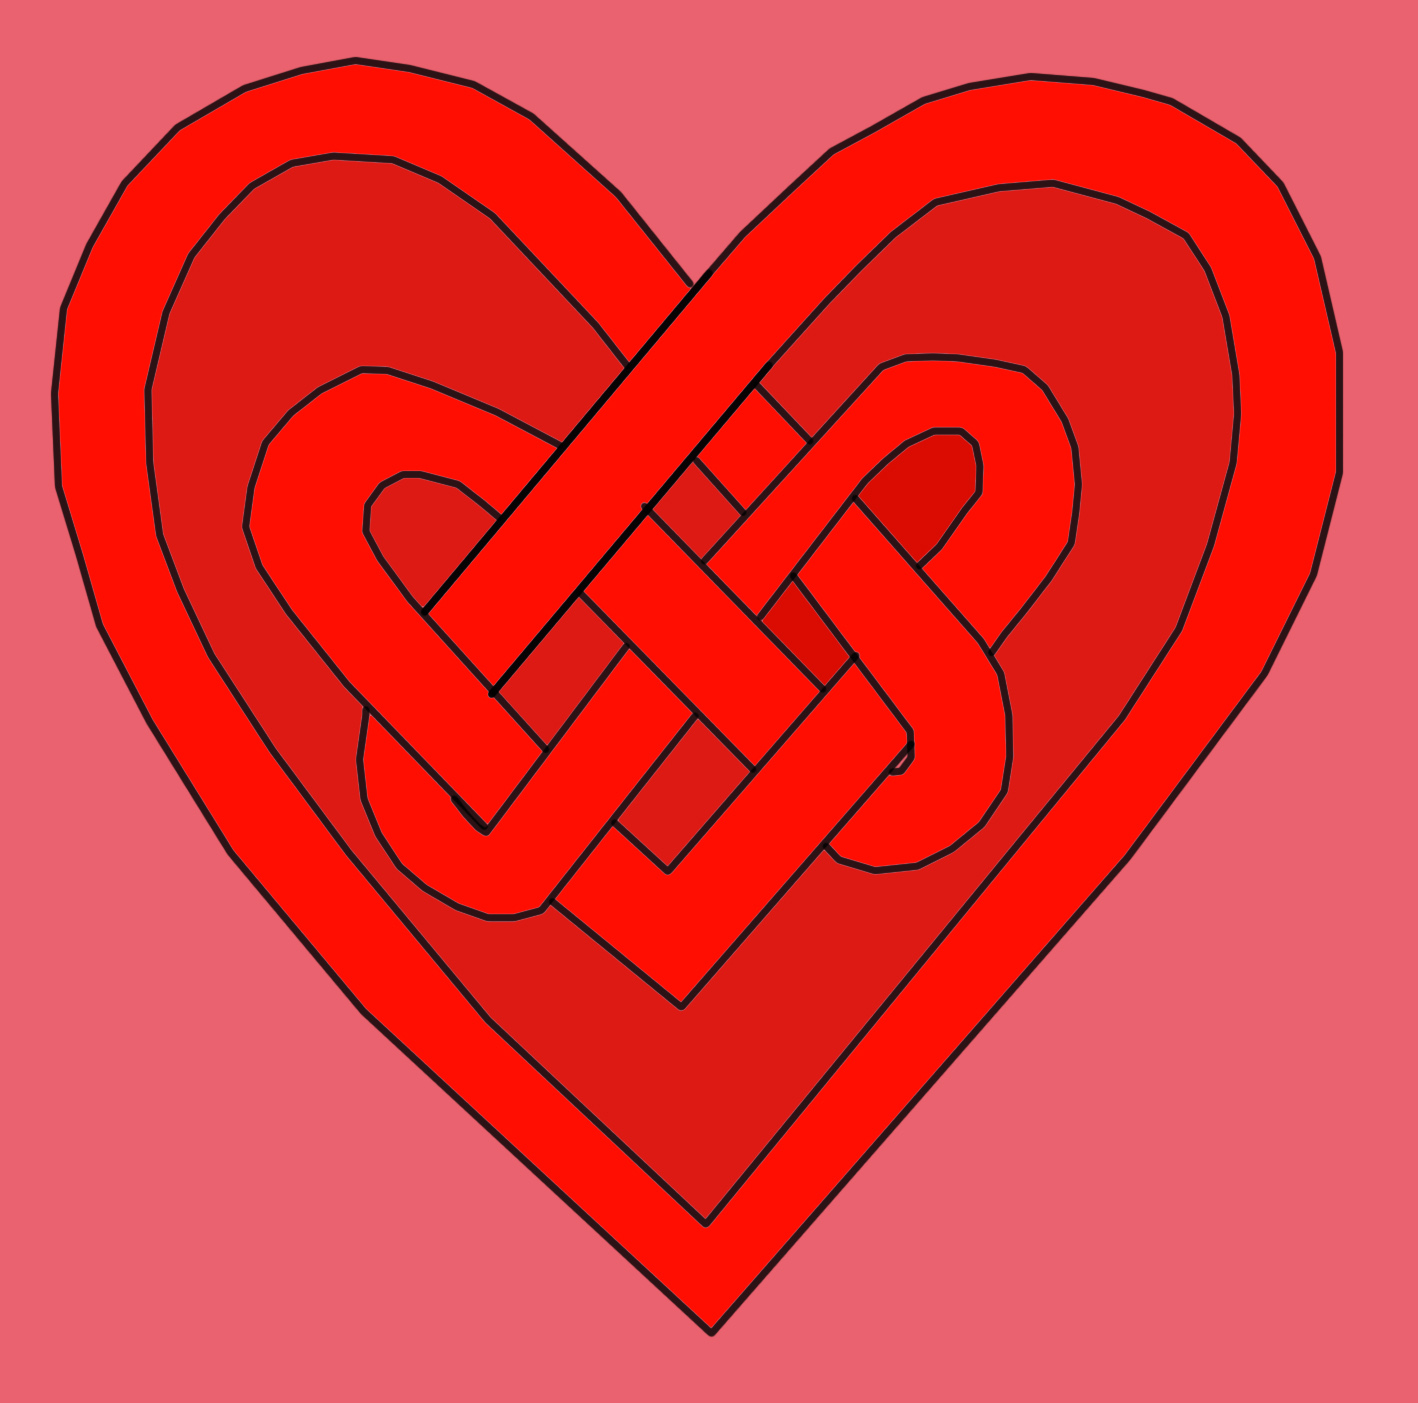 Celtic Knot Heart Tattoo Graphic